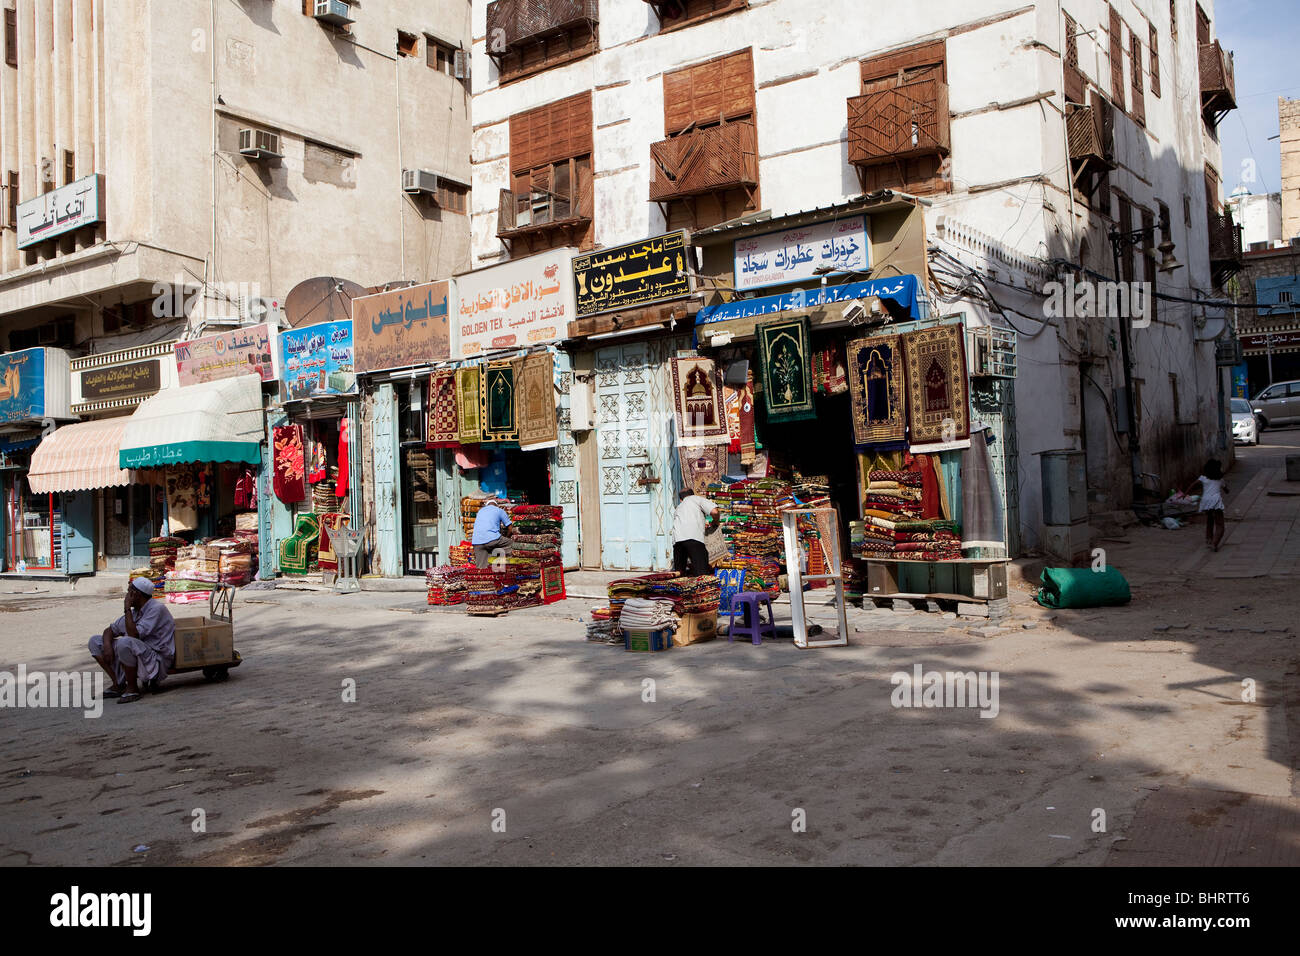 al balad old town jeddah saudi arabia souk market stock photo